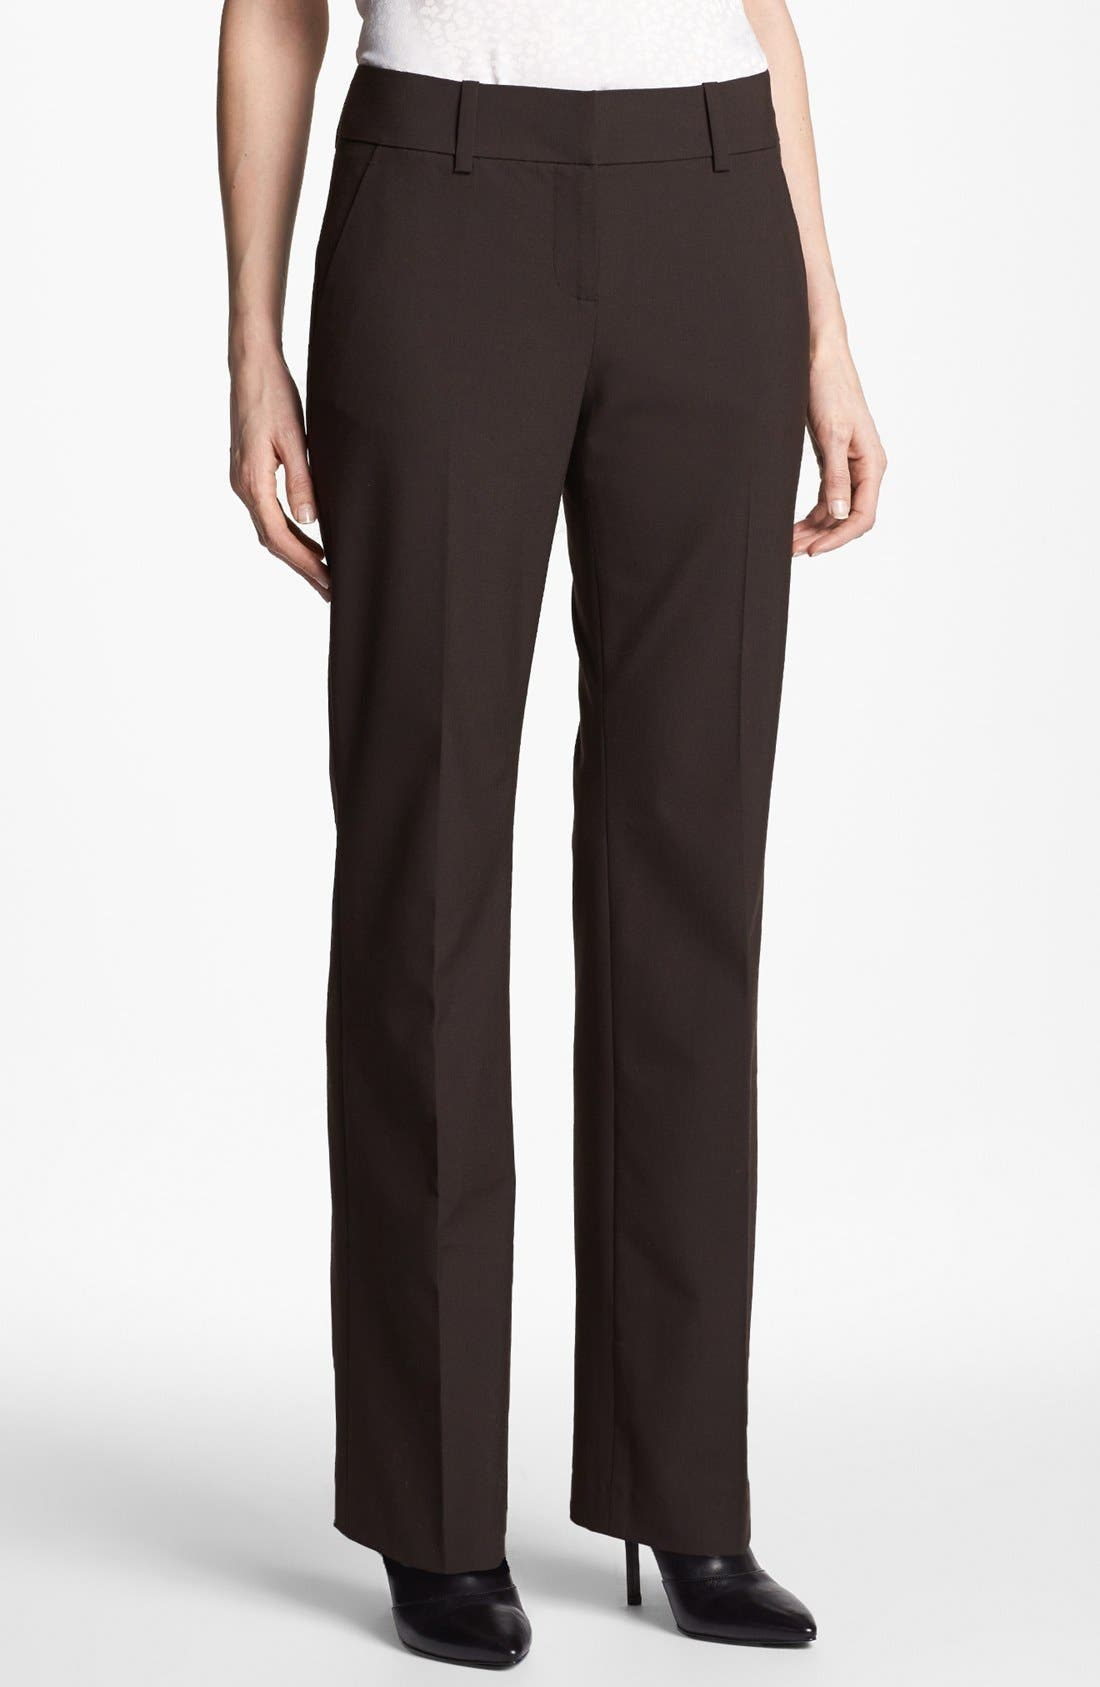 Alternate Image 1 Selected - Halogen® 'New Taylor' Pants